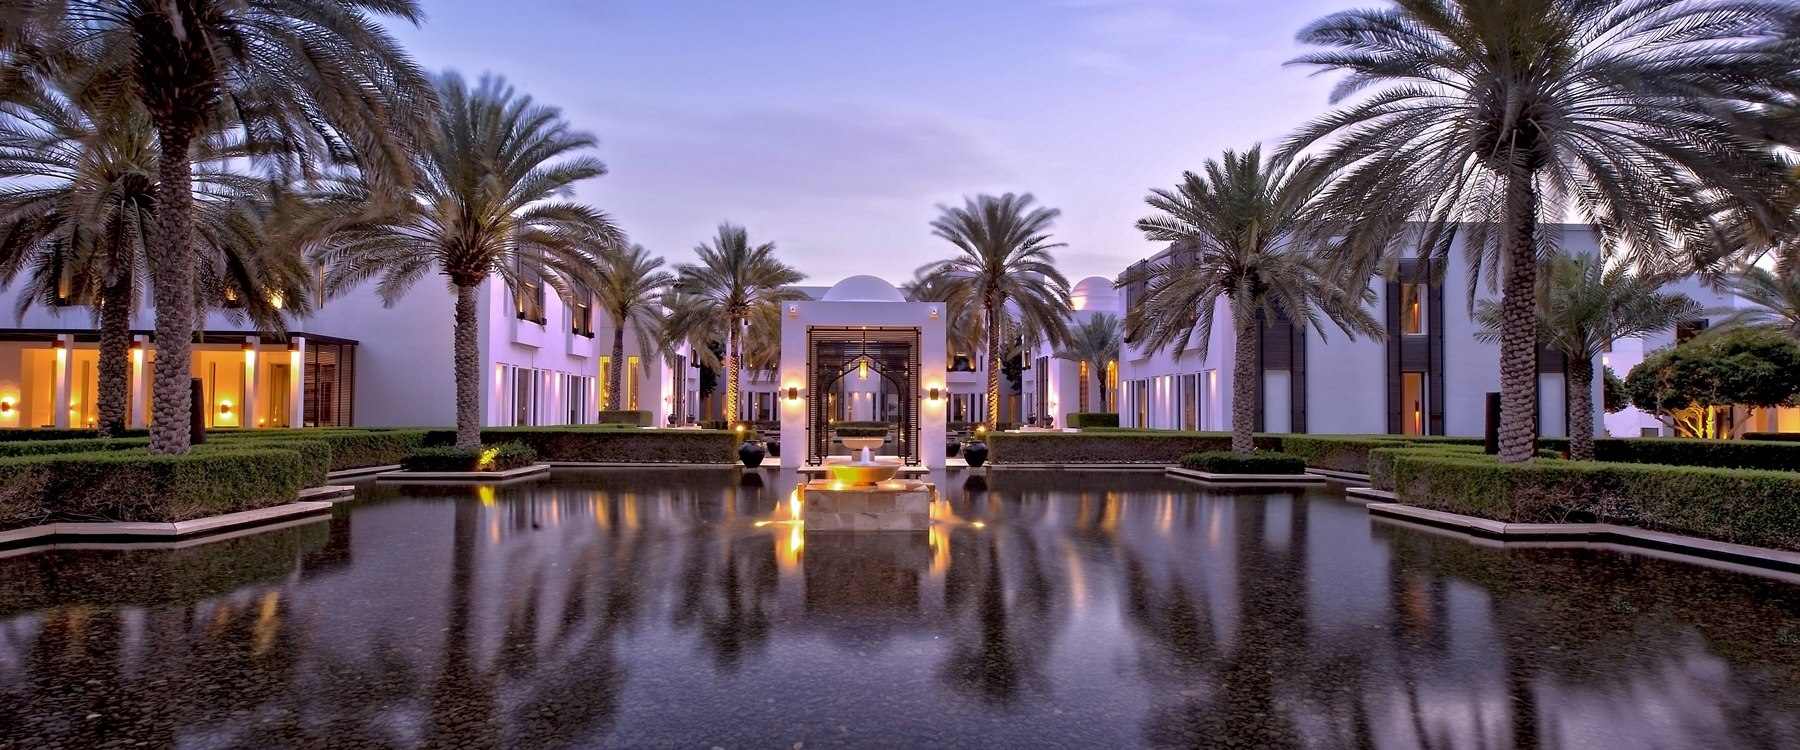 The water garden at The Chedi Muscat, Oman